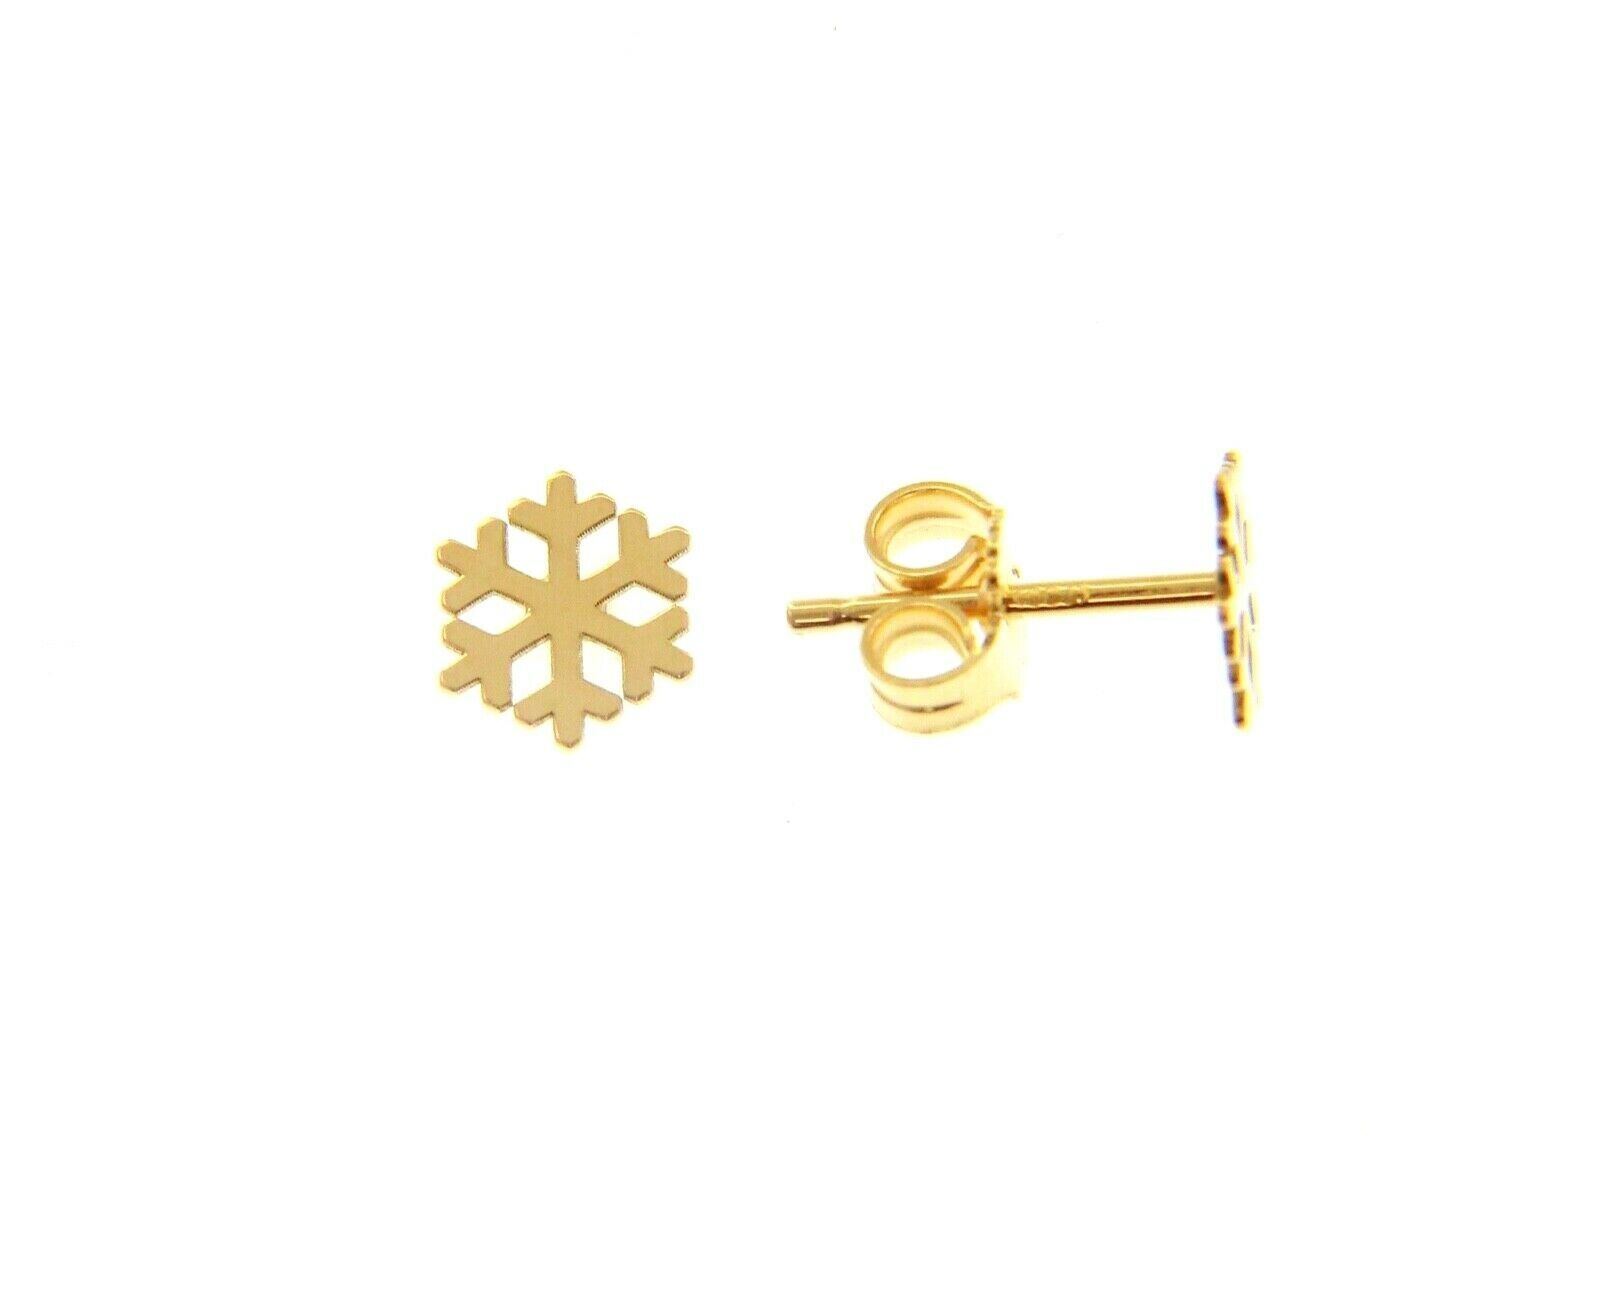 18K YELLOW GOLD EARRINGS SMALL FLAT SNOWFLAKE, SHINY, SMOOTH, 5mm, MADE IN ITALY